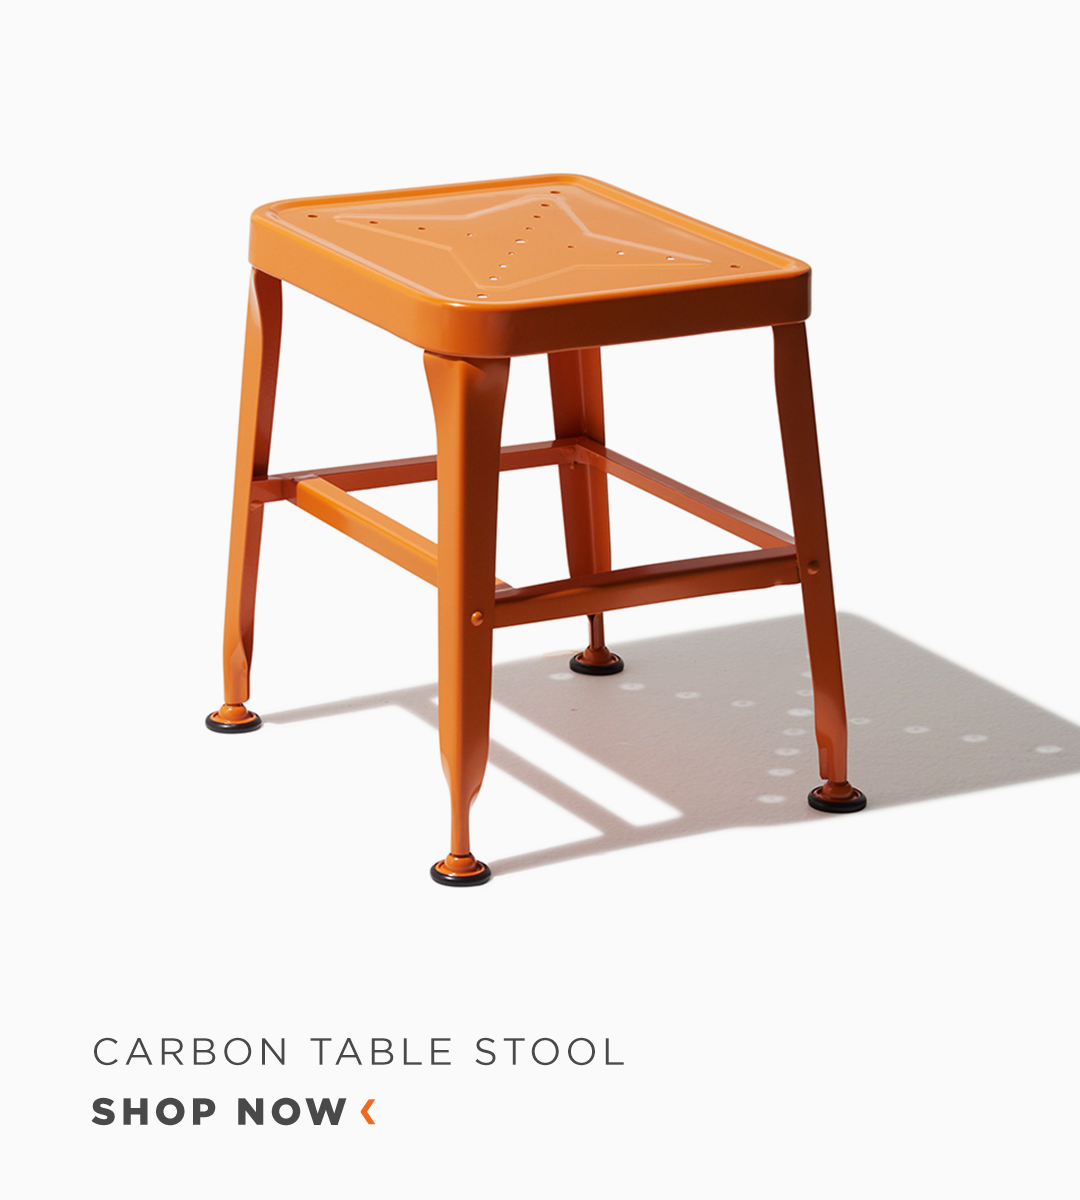 Carbon Table Stool